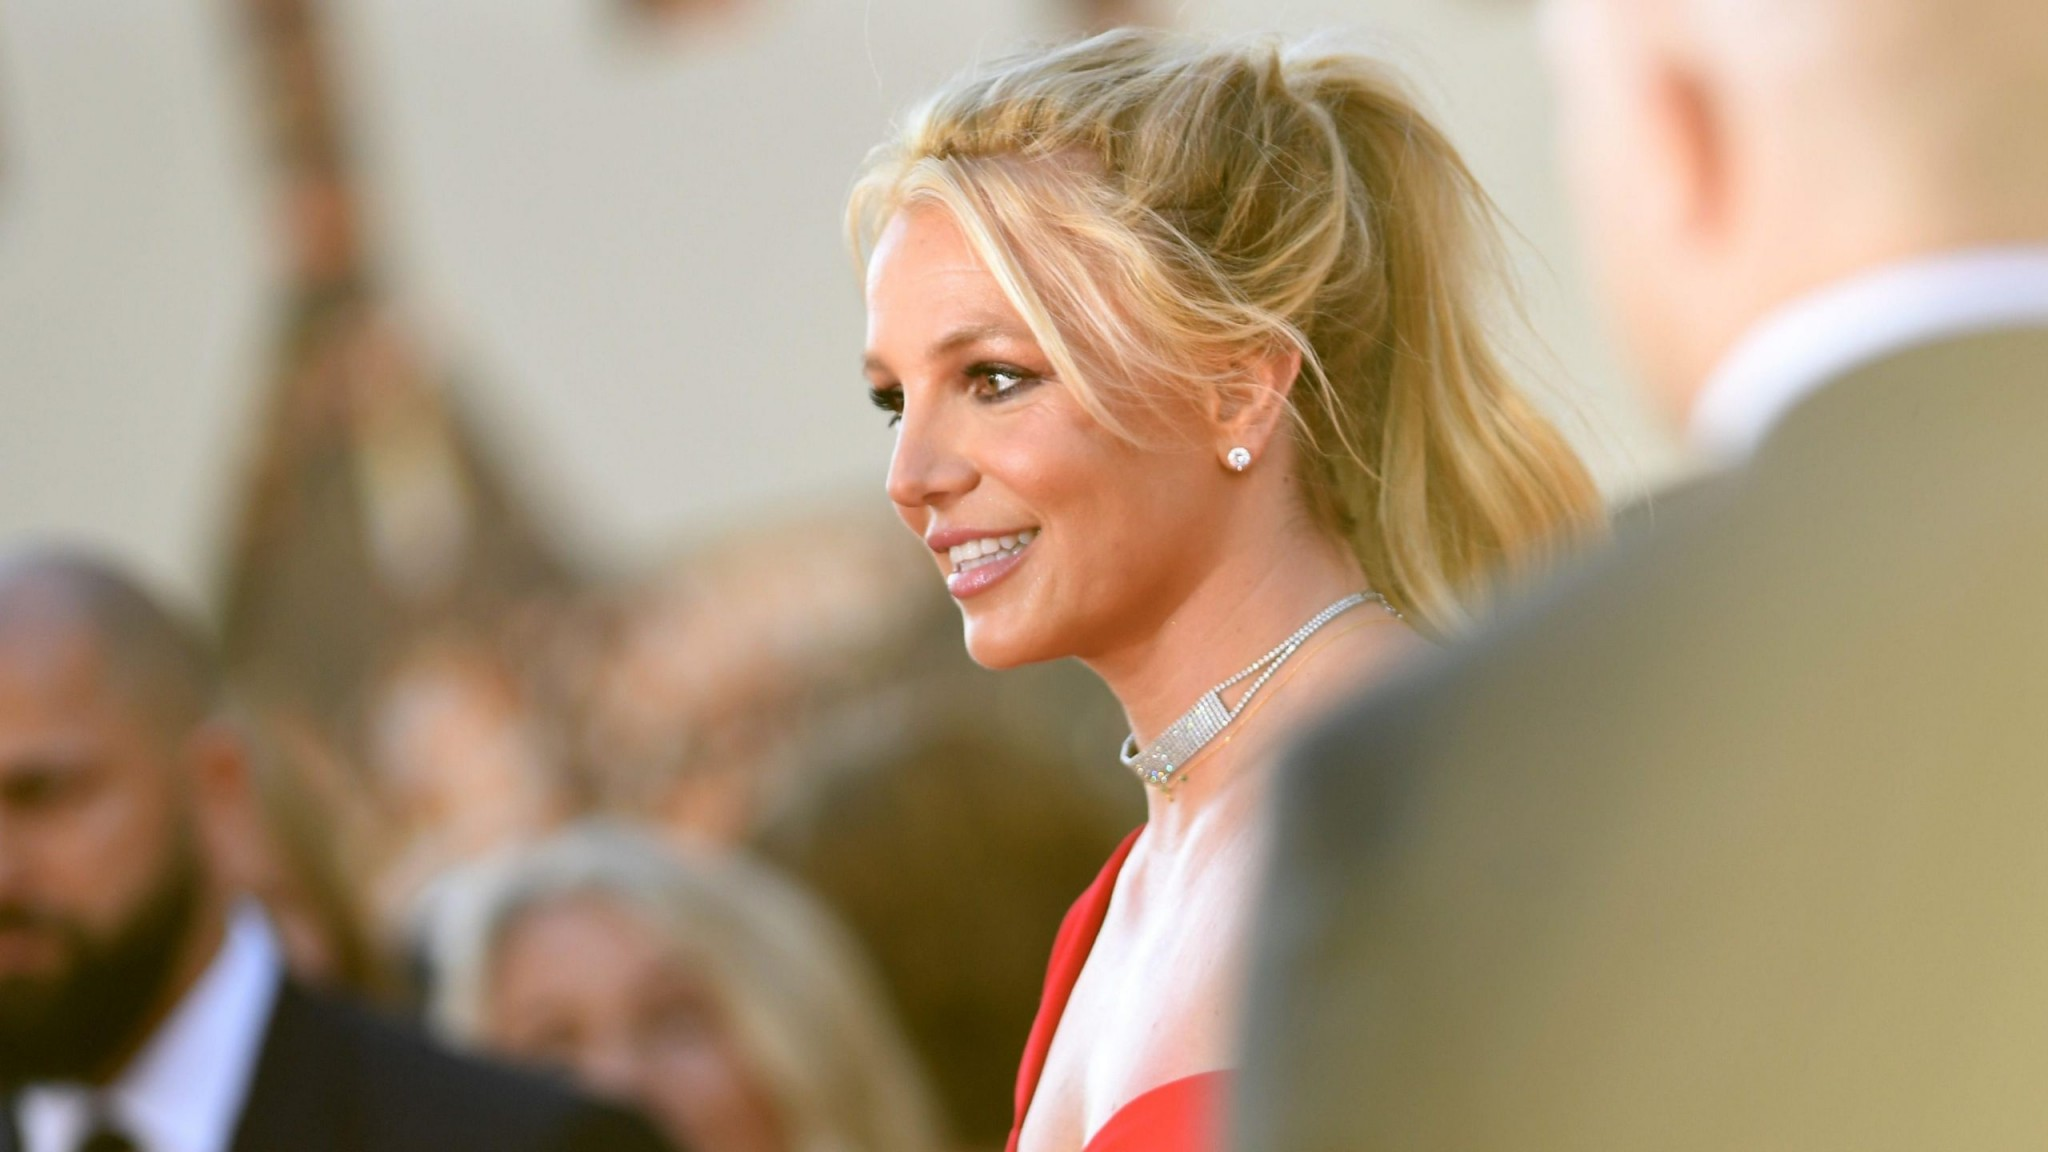 Britney Spears (Finally) Speaks Out Against 'Abusive' Conservatorship